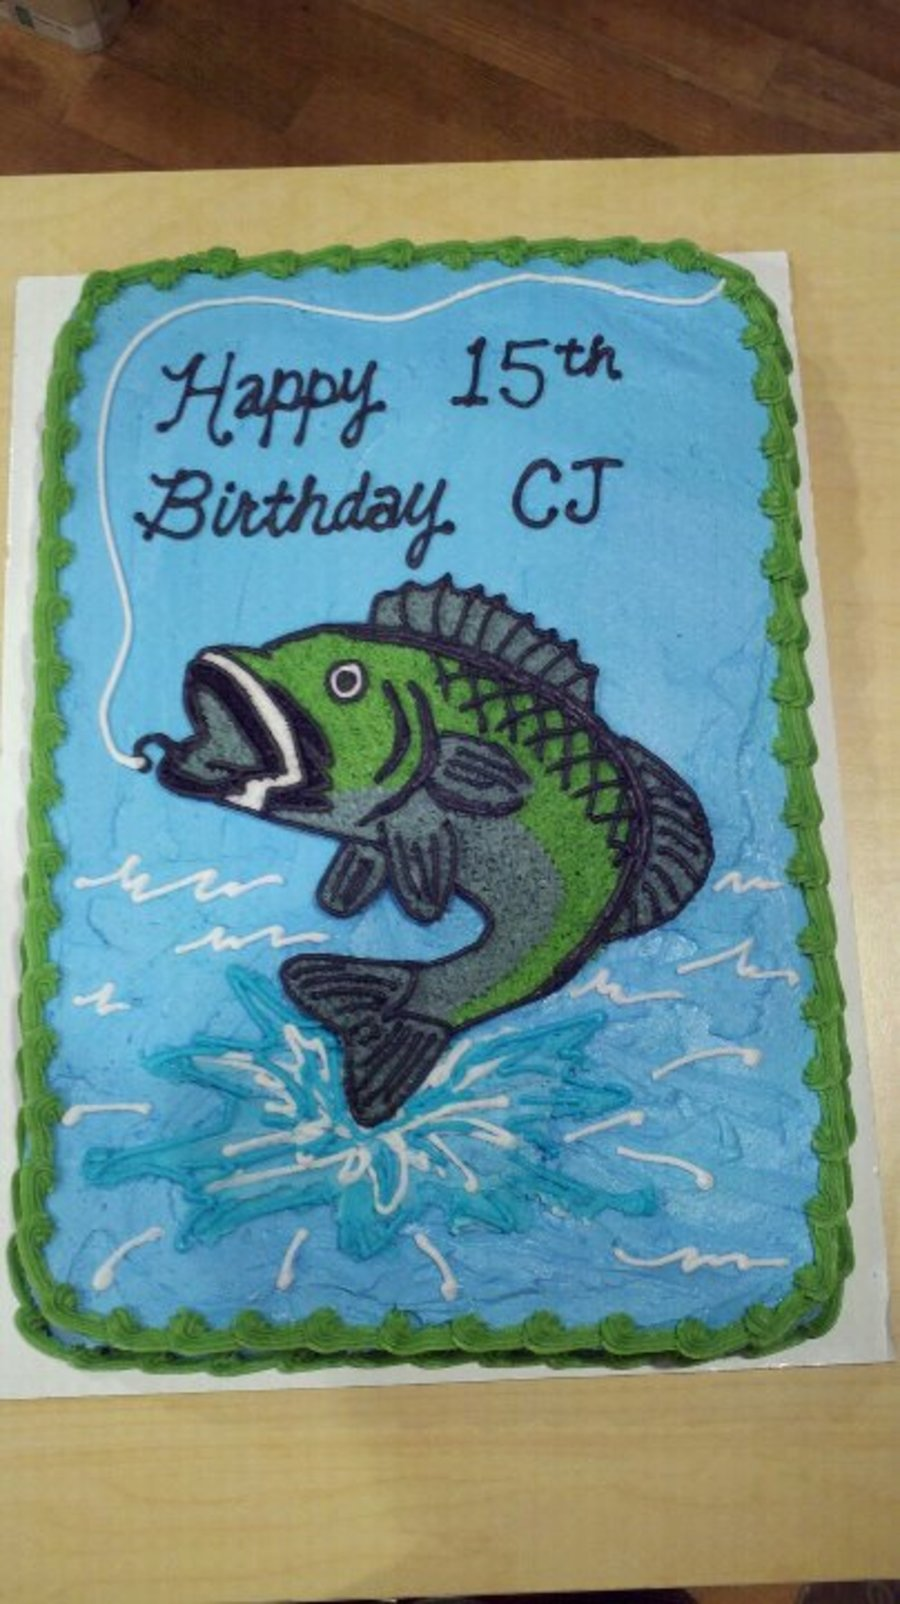 Fishing birthday pics